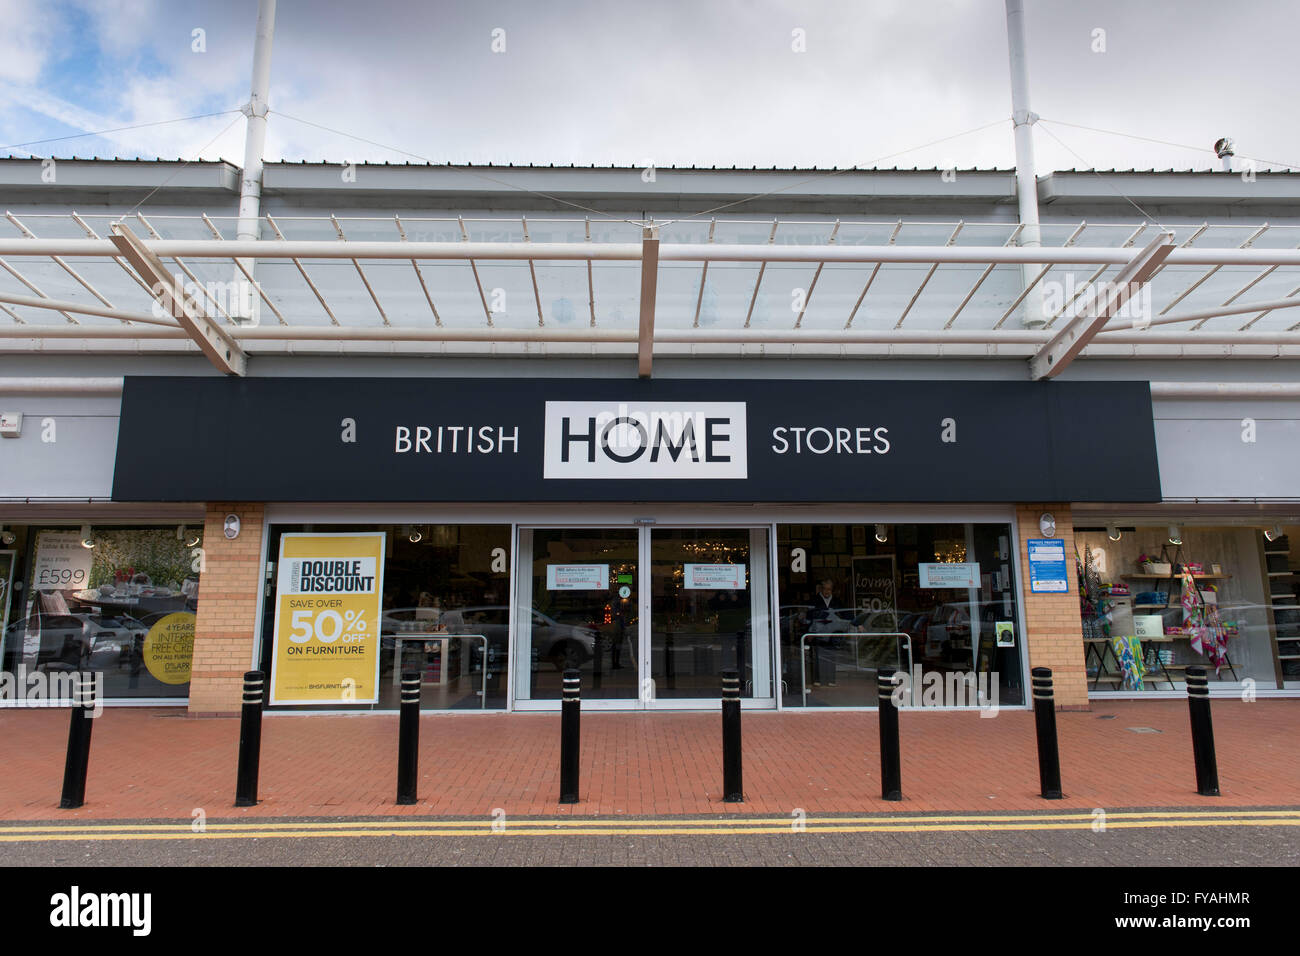 British Home Stores  BHS  store at Cardiff Bay retail park  Cardiff  BHS  has gone into administration. British Home Stores  BHS  store at Cardiff Bay retail park